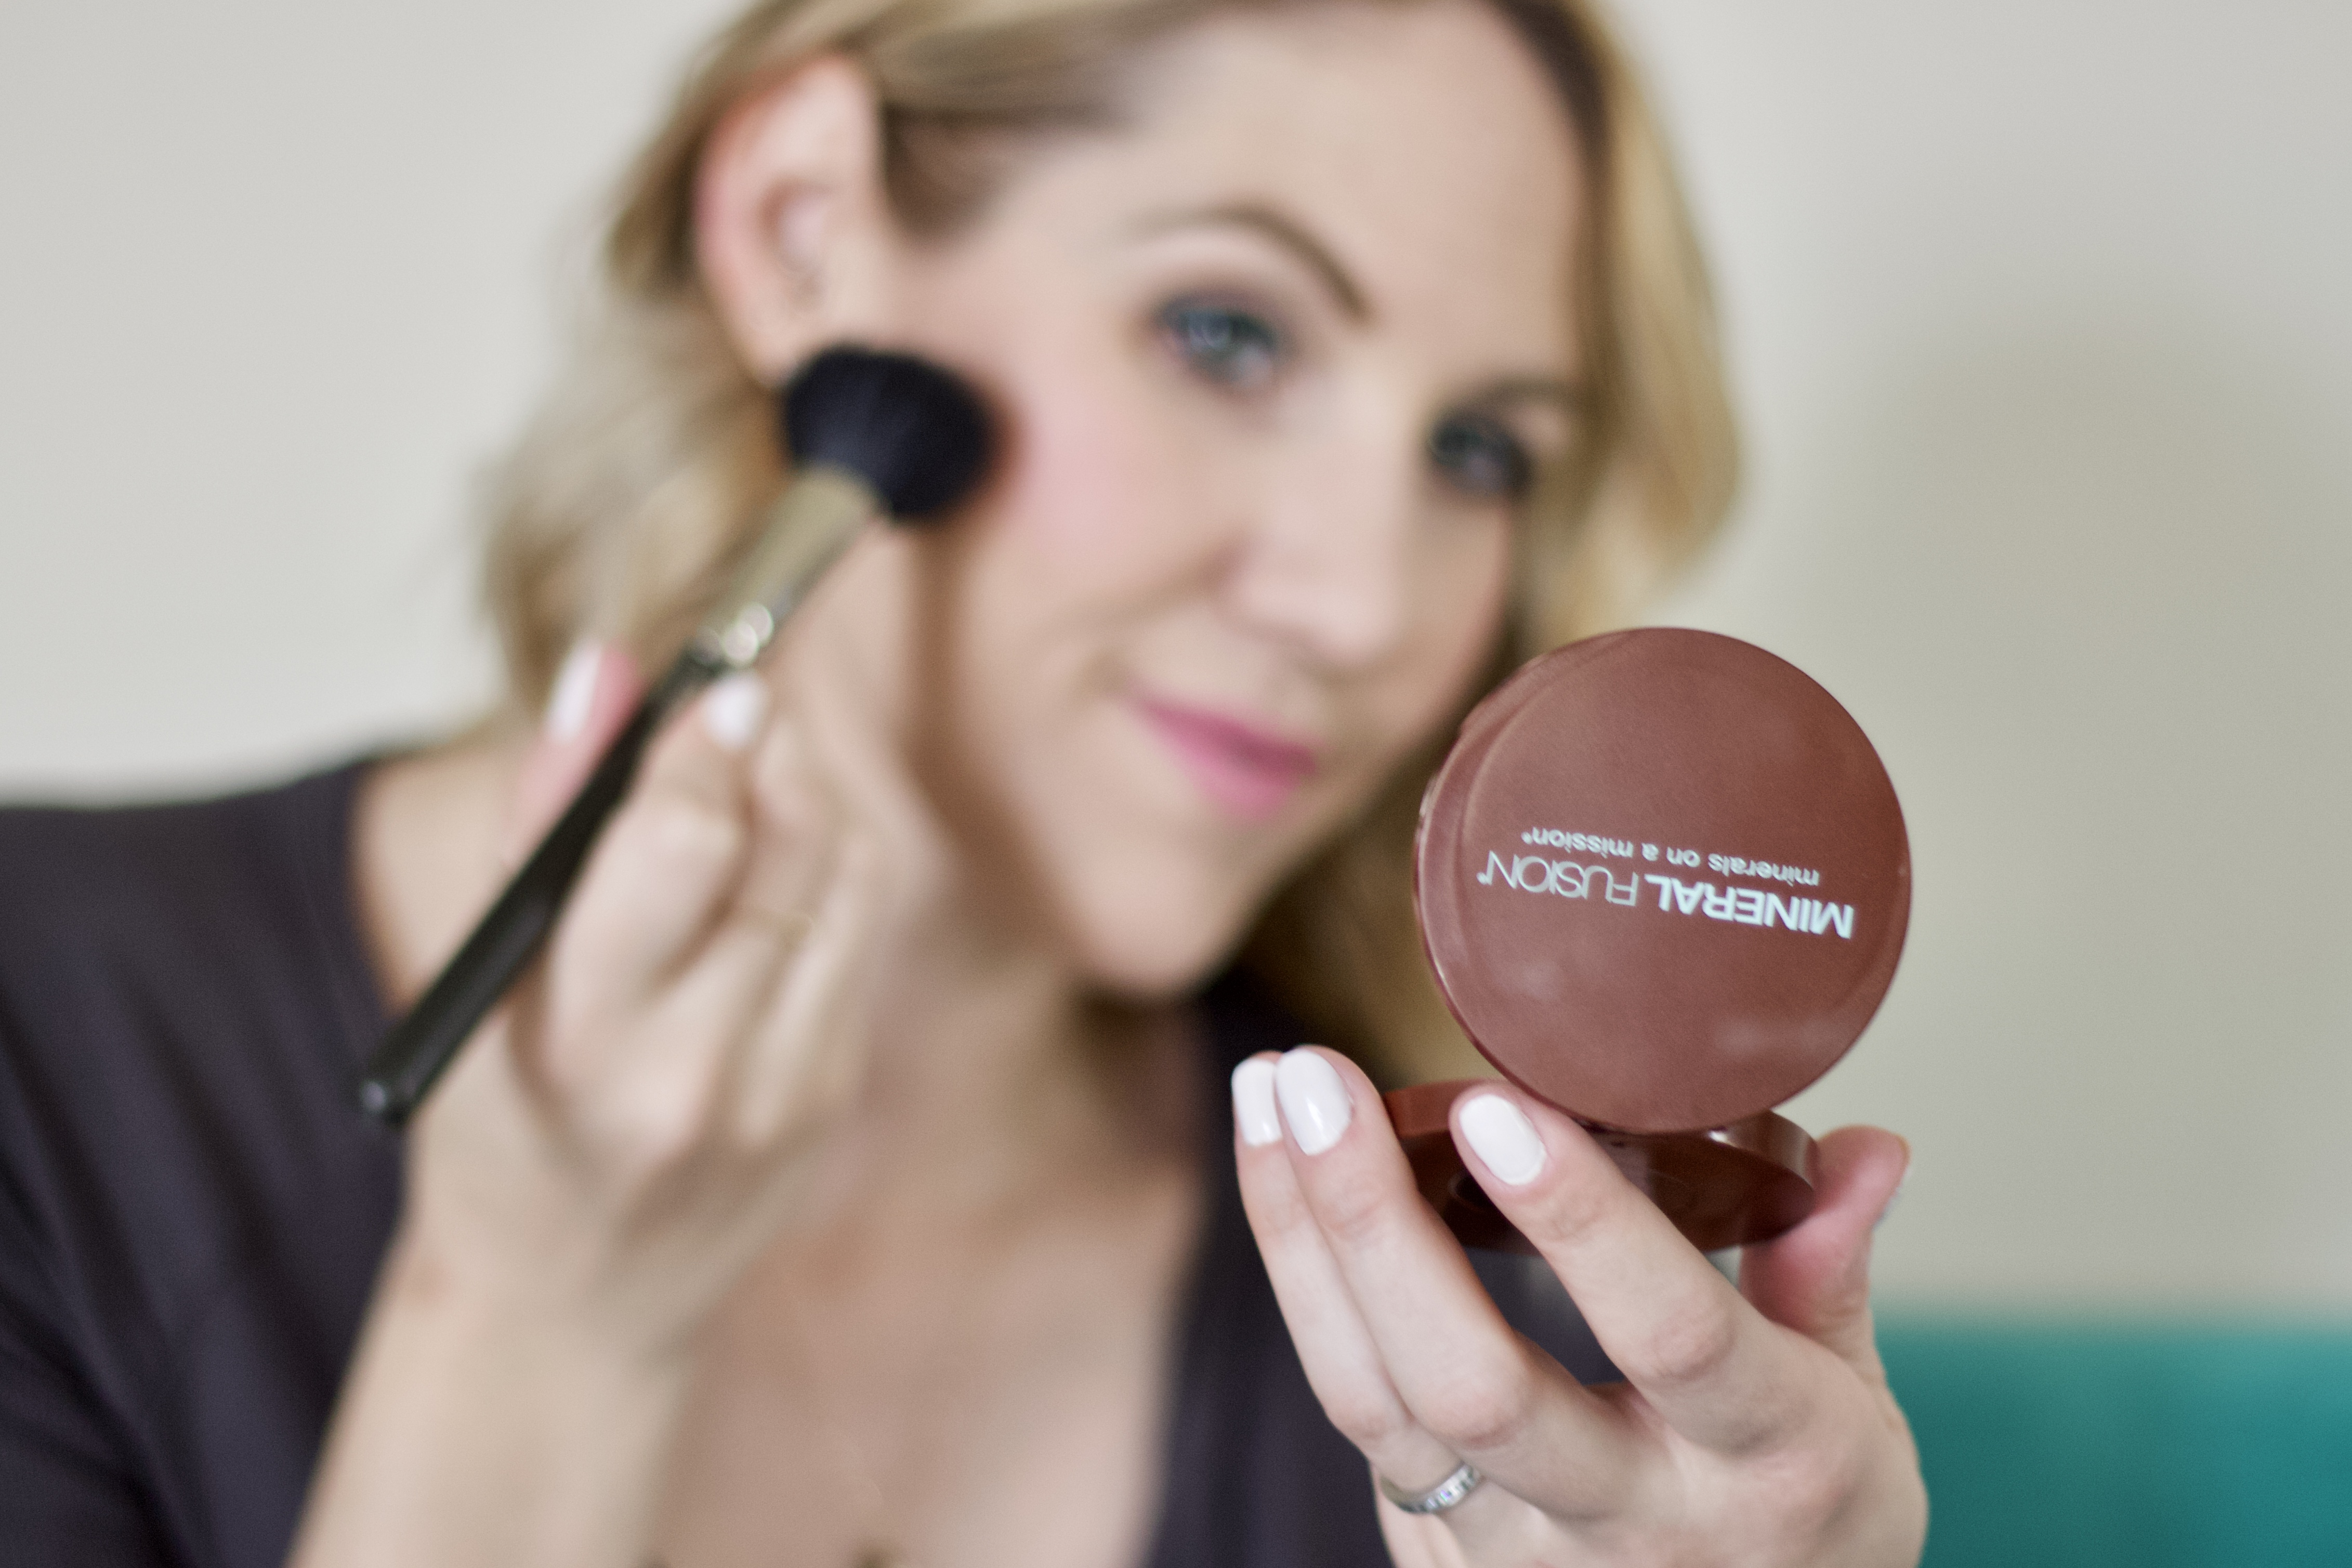 mineral fusion setting power review #mineralfusion #cleanbeauty #makeup